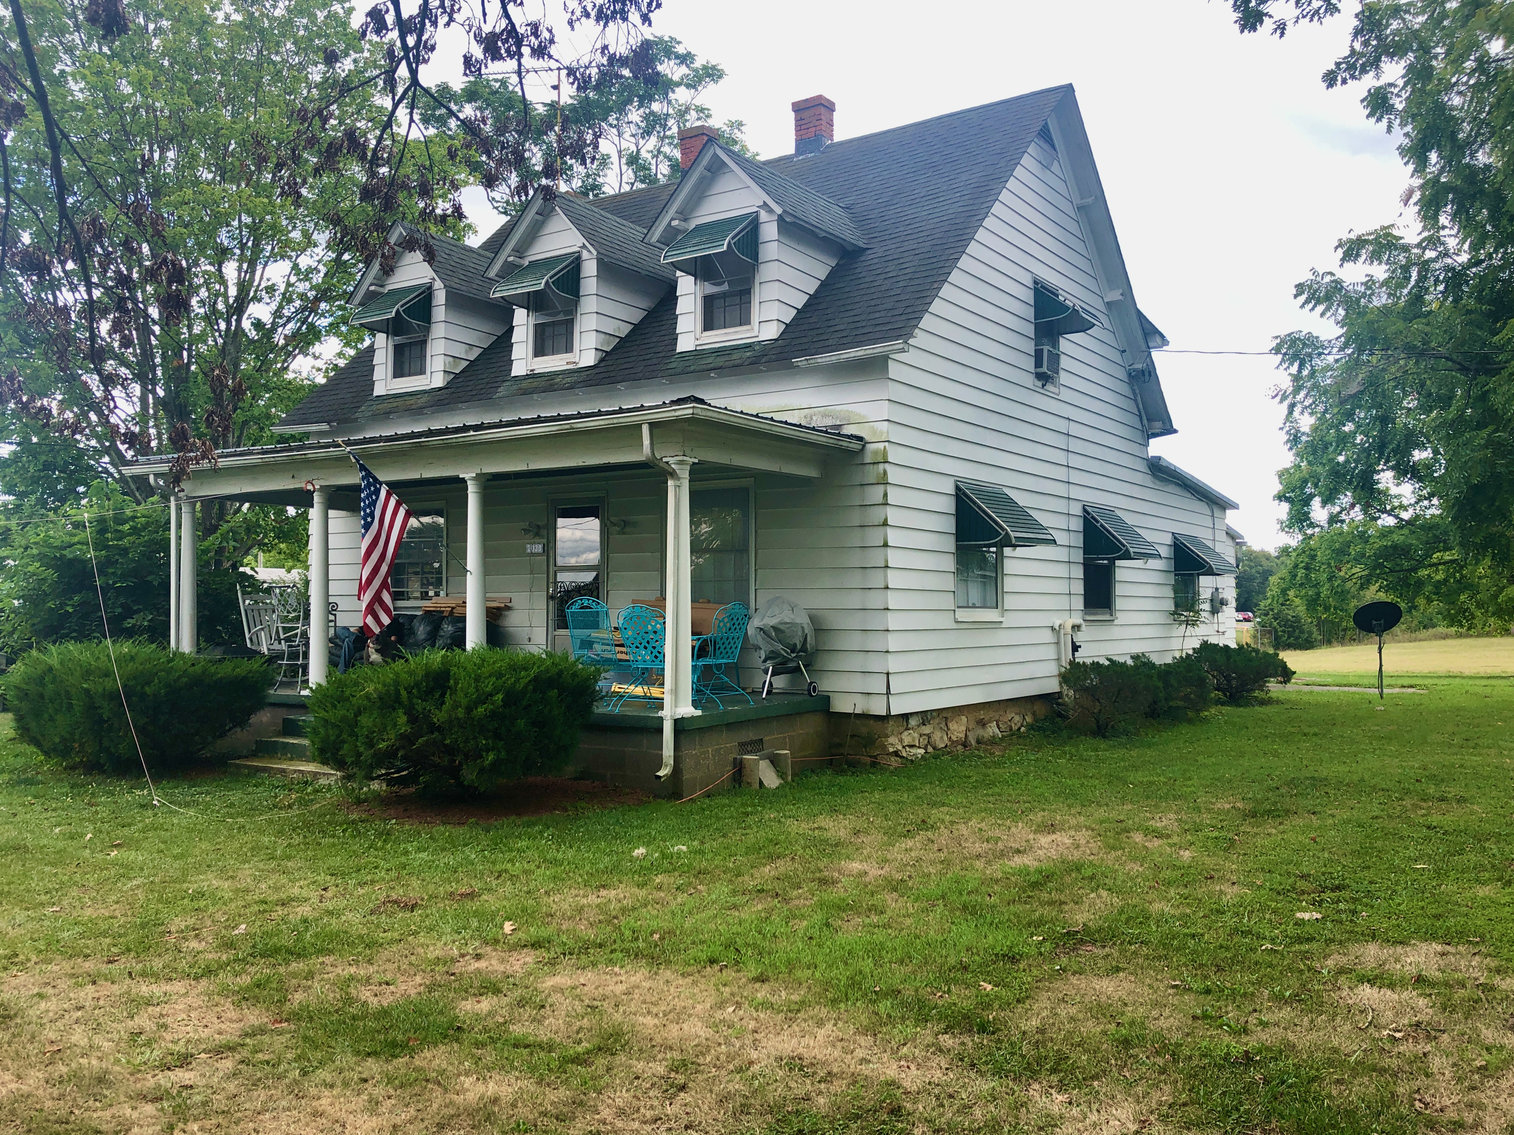 Image for 49.62 +/- Acres w/Income Producing Home, Pond & 2 Bay Shop/Garage--Frederick County, VA